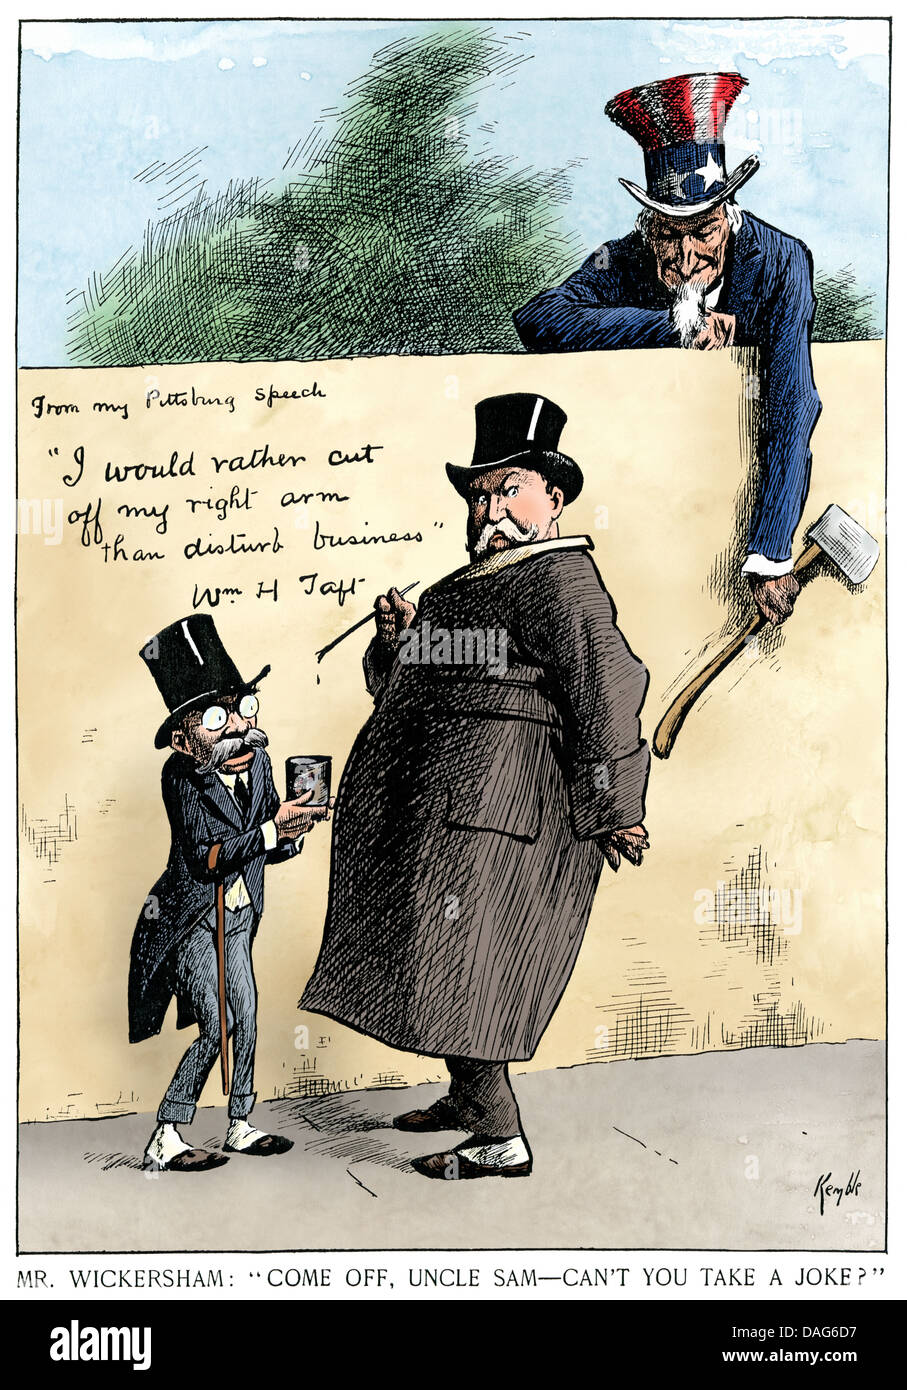 Cartoon about antitrust actions of Attorney General Wickersham and President Taft, 1911. Hand-colored woodcut - Stock Image